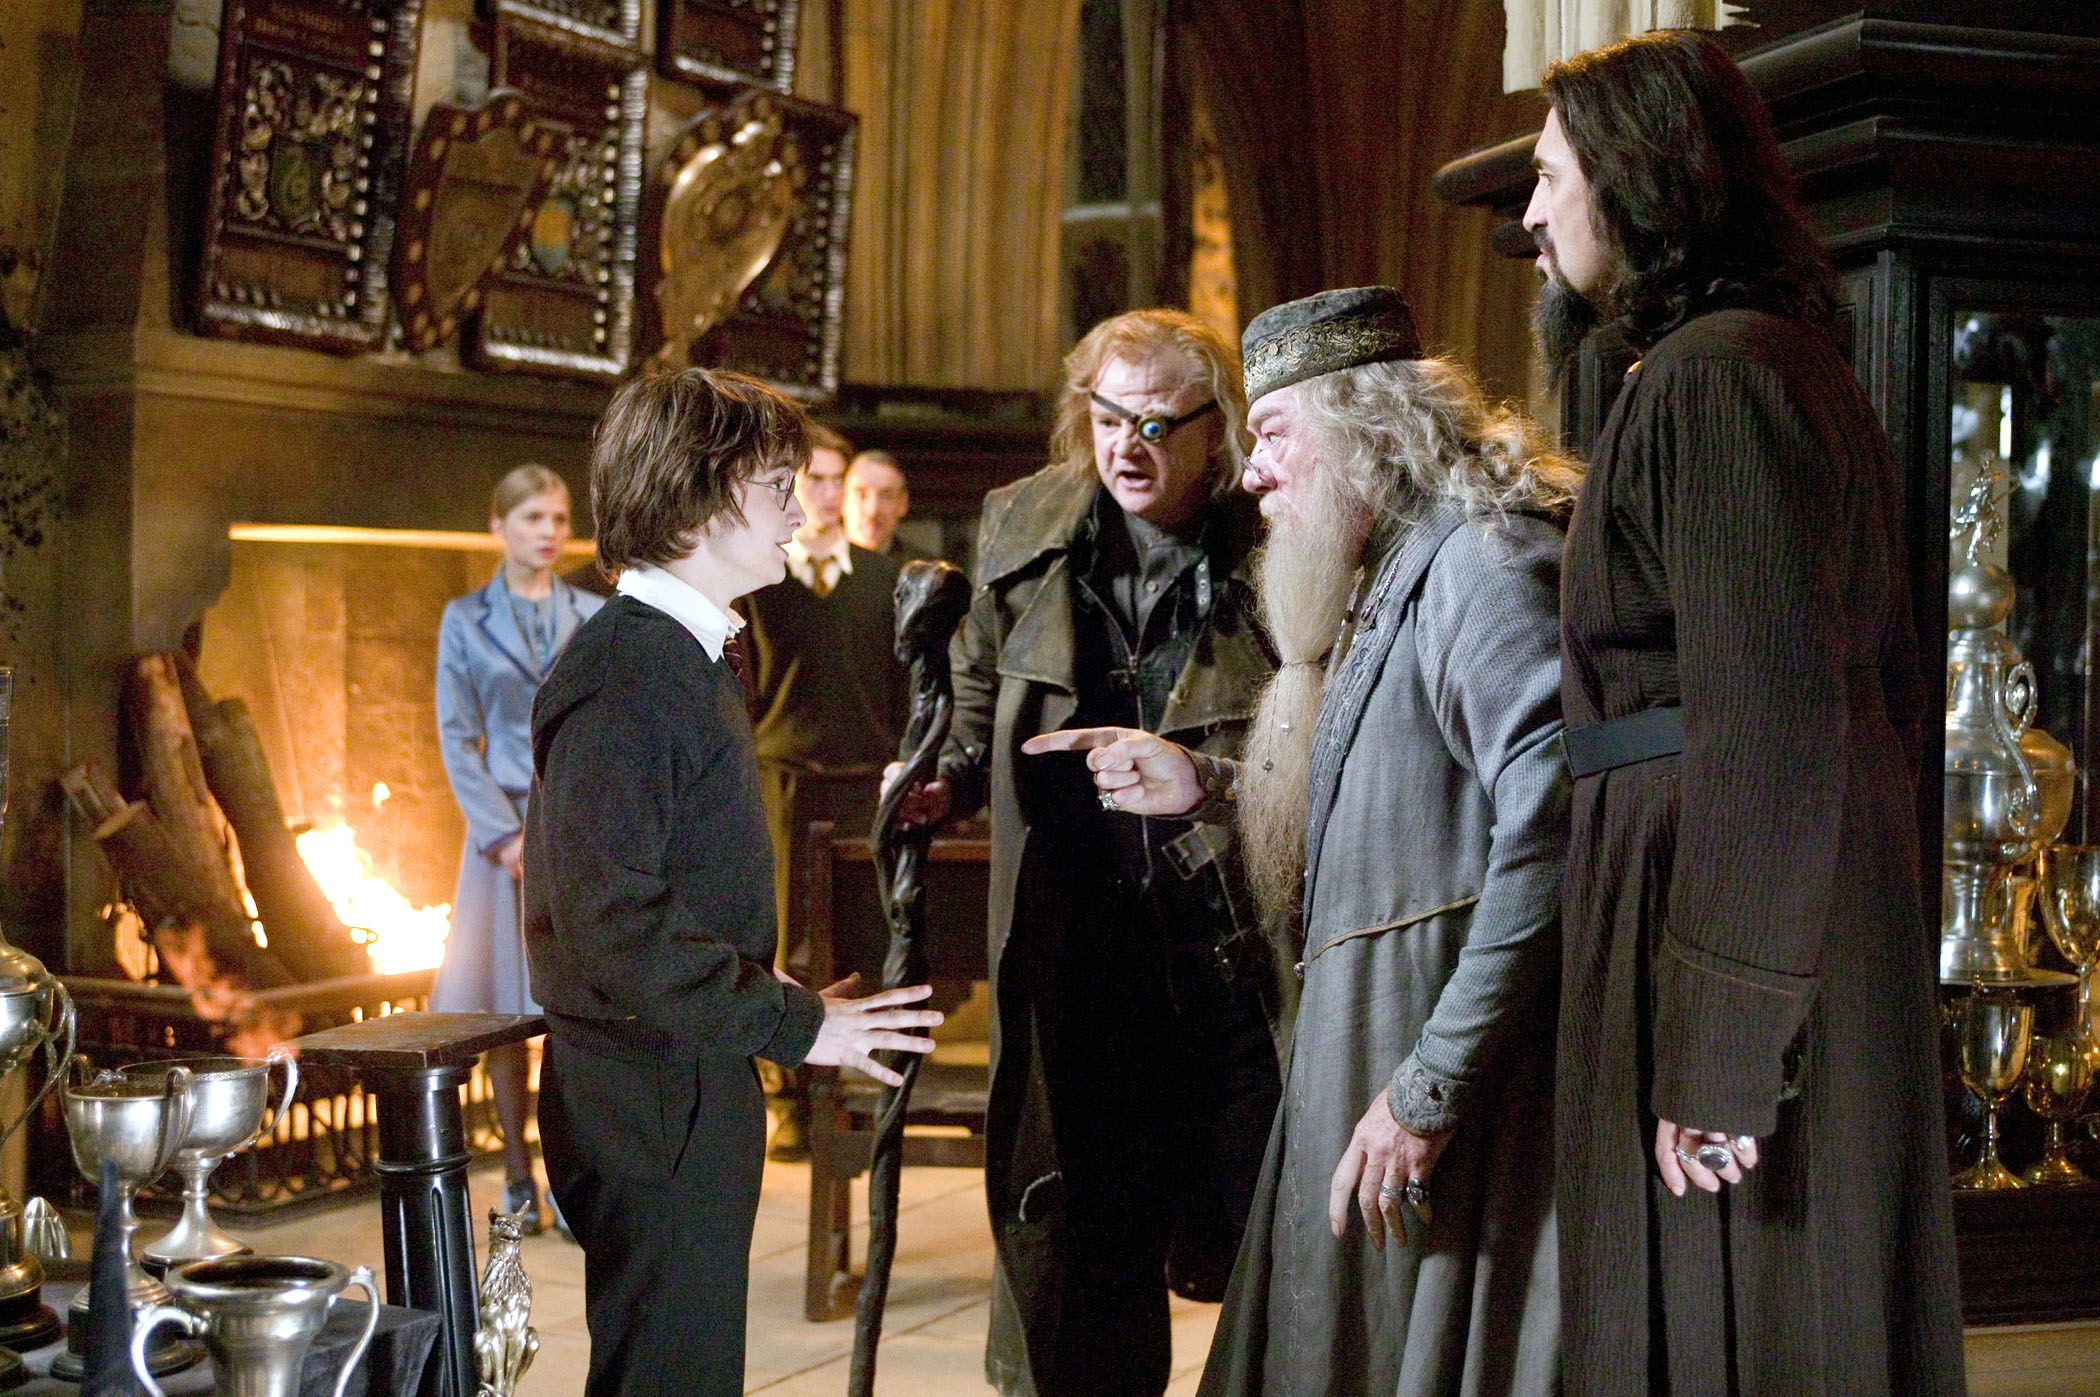 Dumbledore confronts Harry about entering his name in the goblet